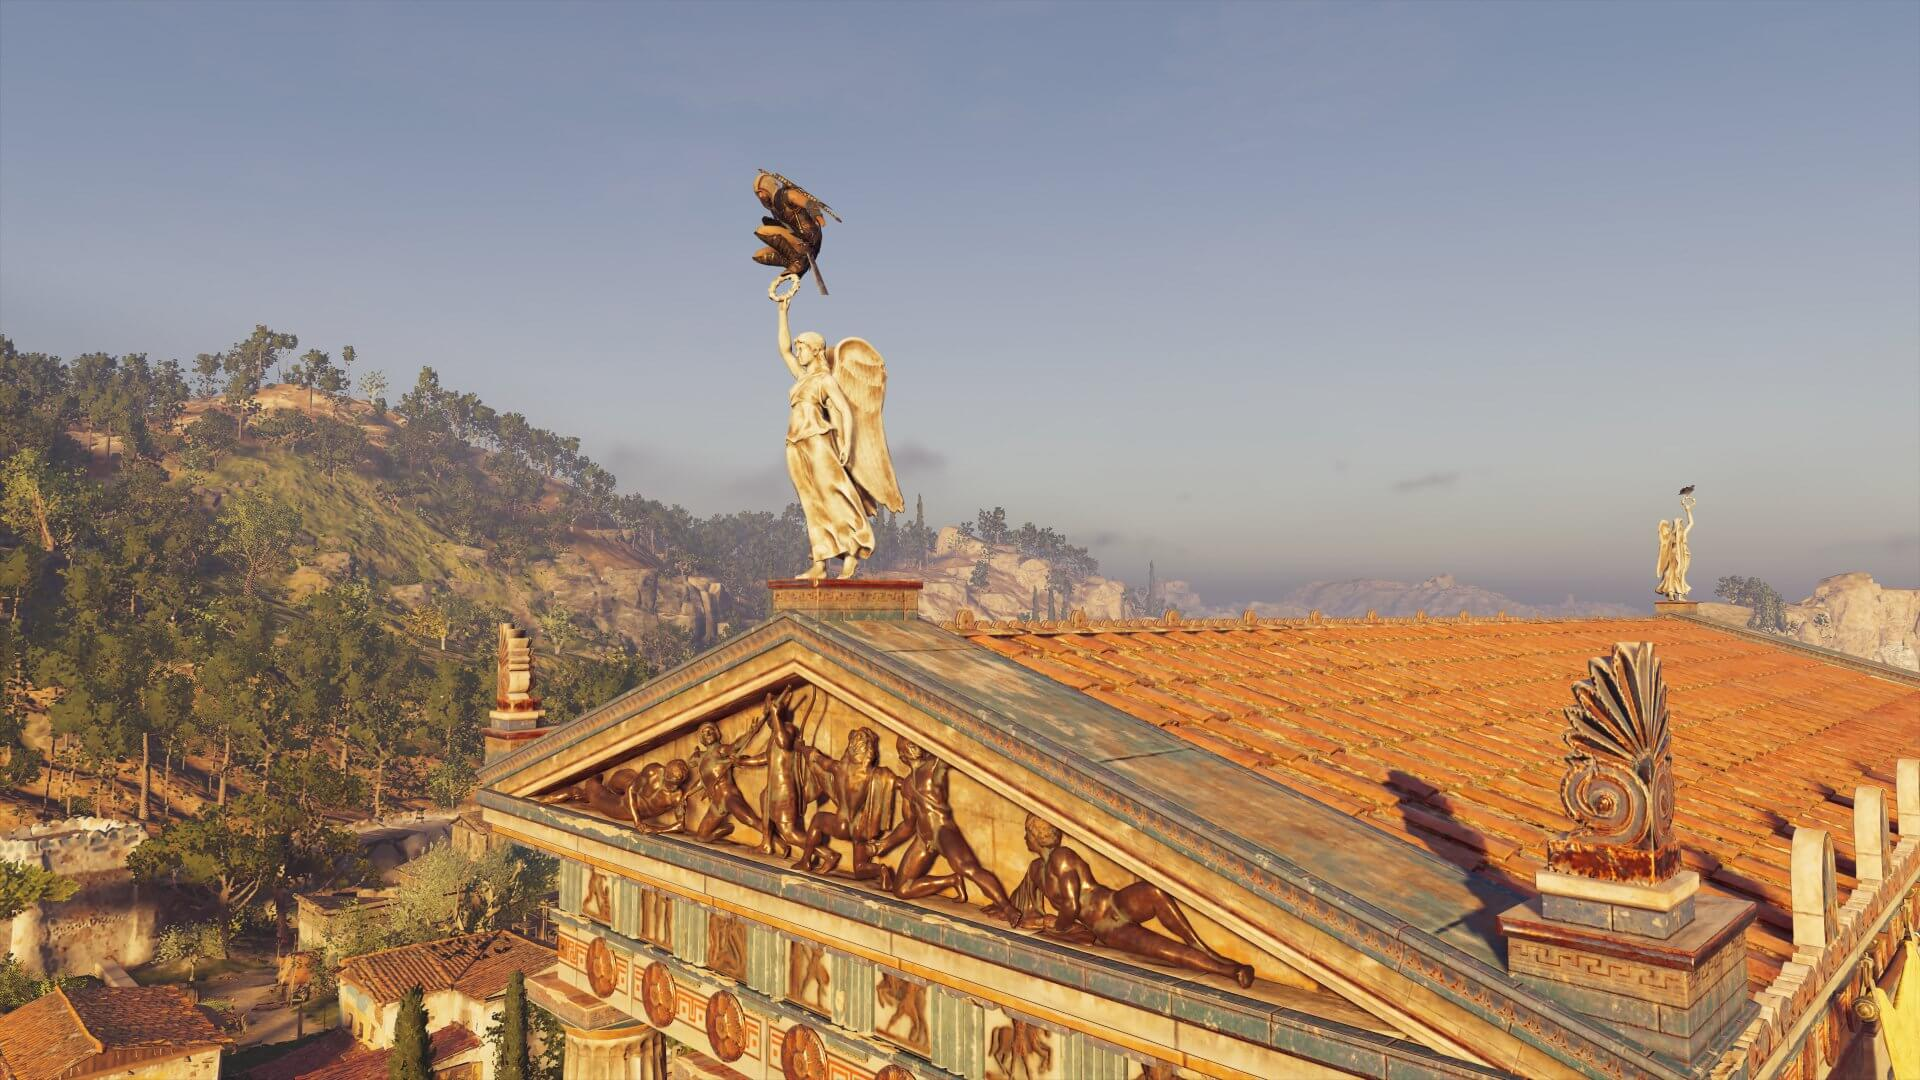 Assassins Creed® Odyssey  58 - Assassin's Creed Odyssey: confira o guia de dicas e truques do game